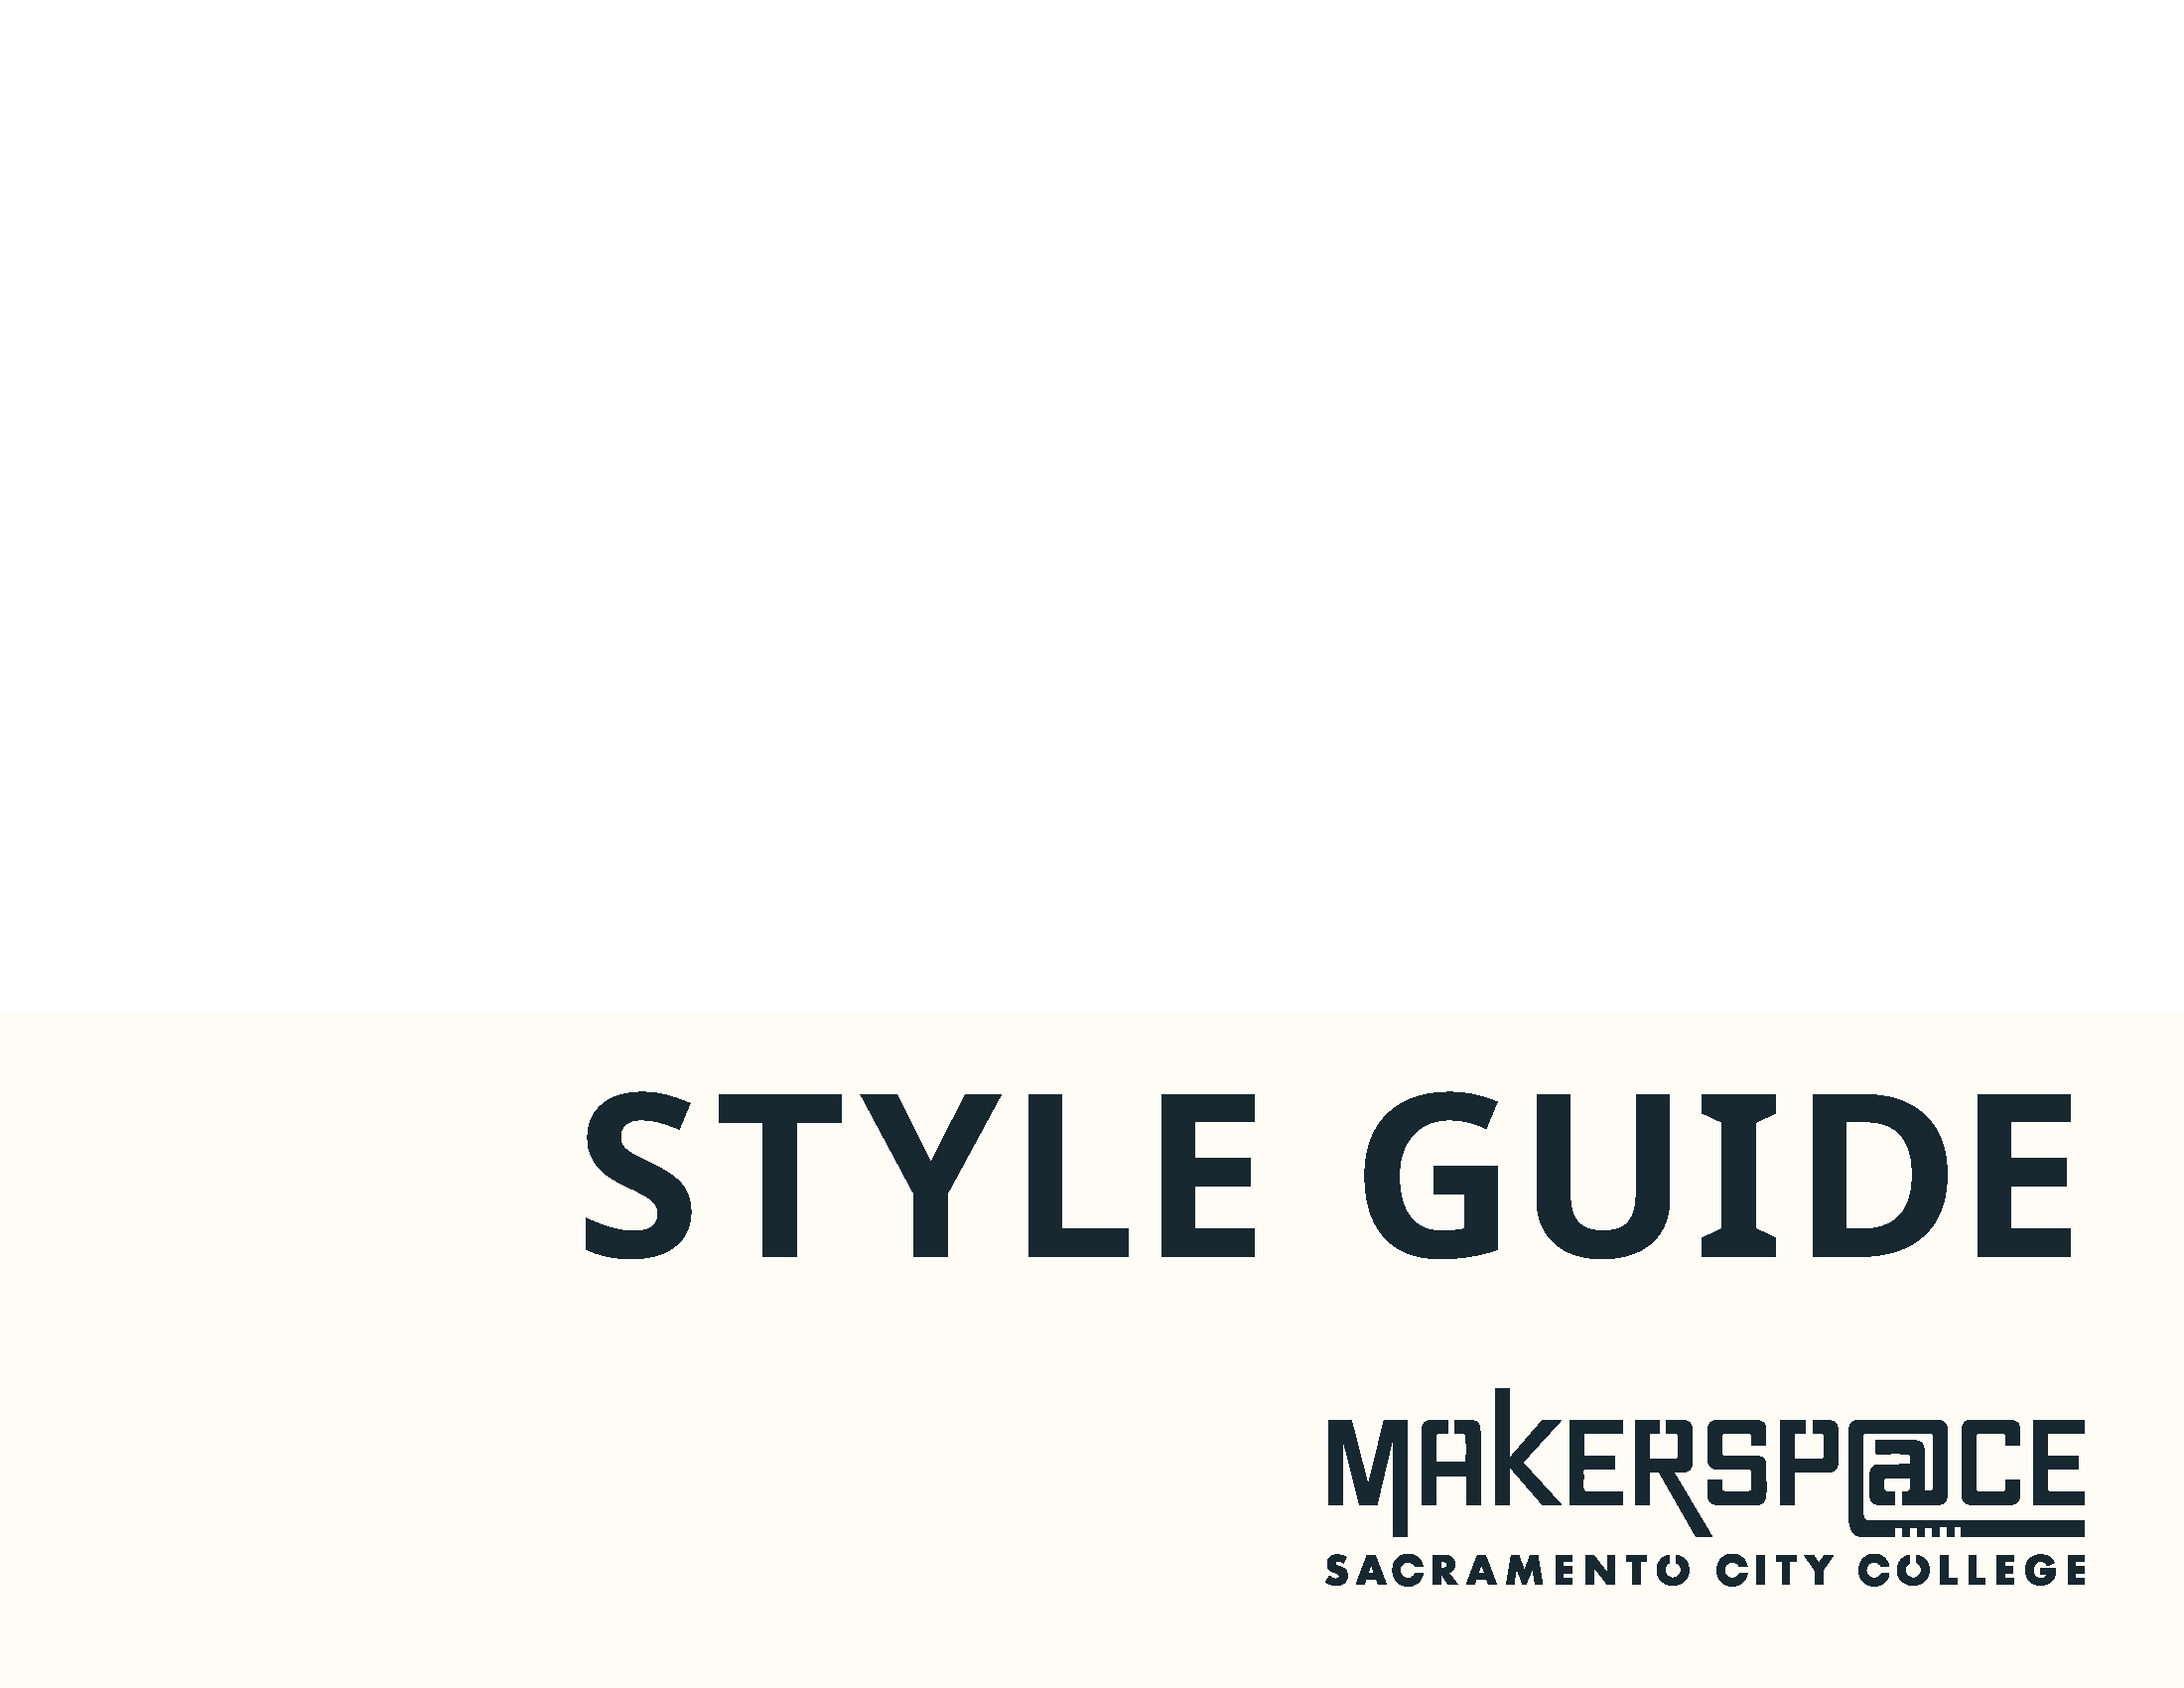 Makerspace_styleguide_Page_01.png